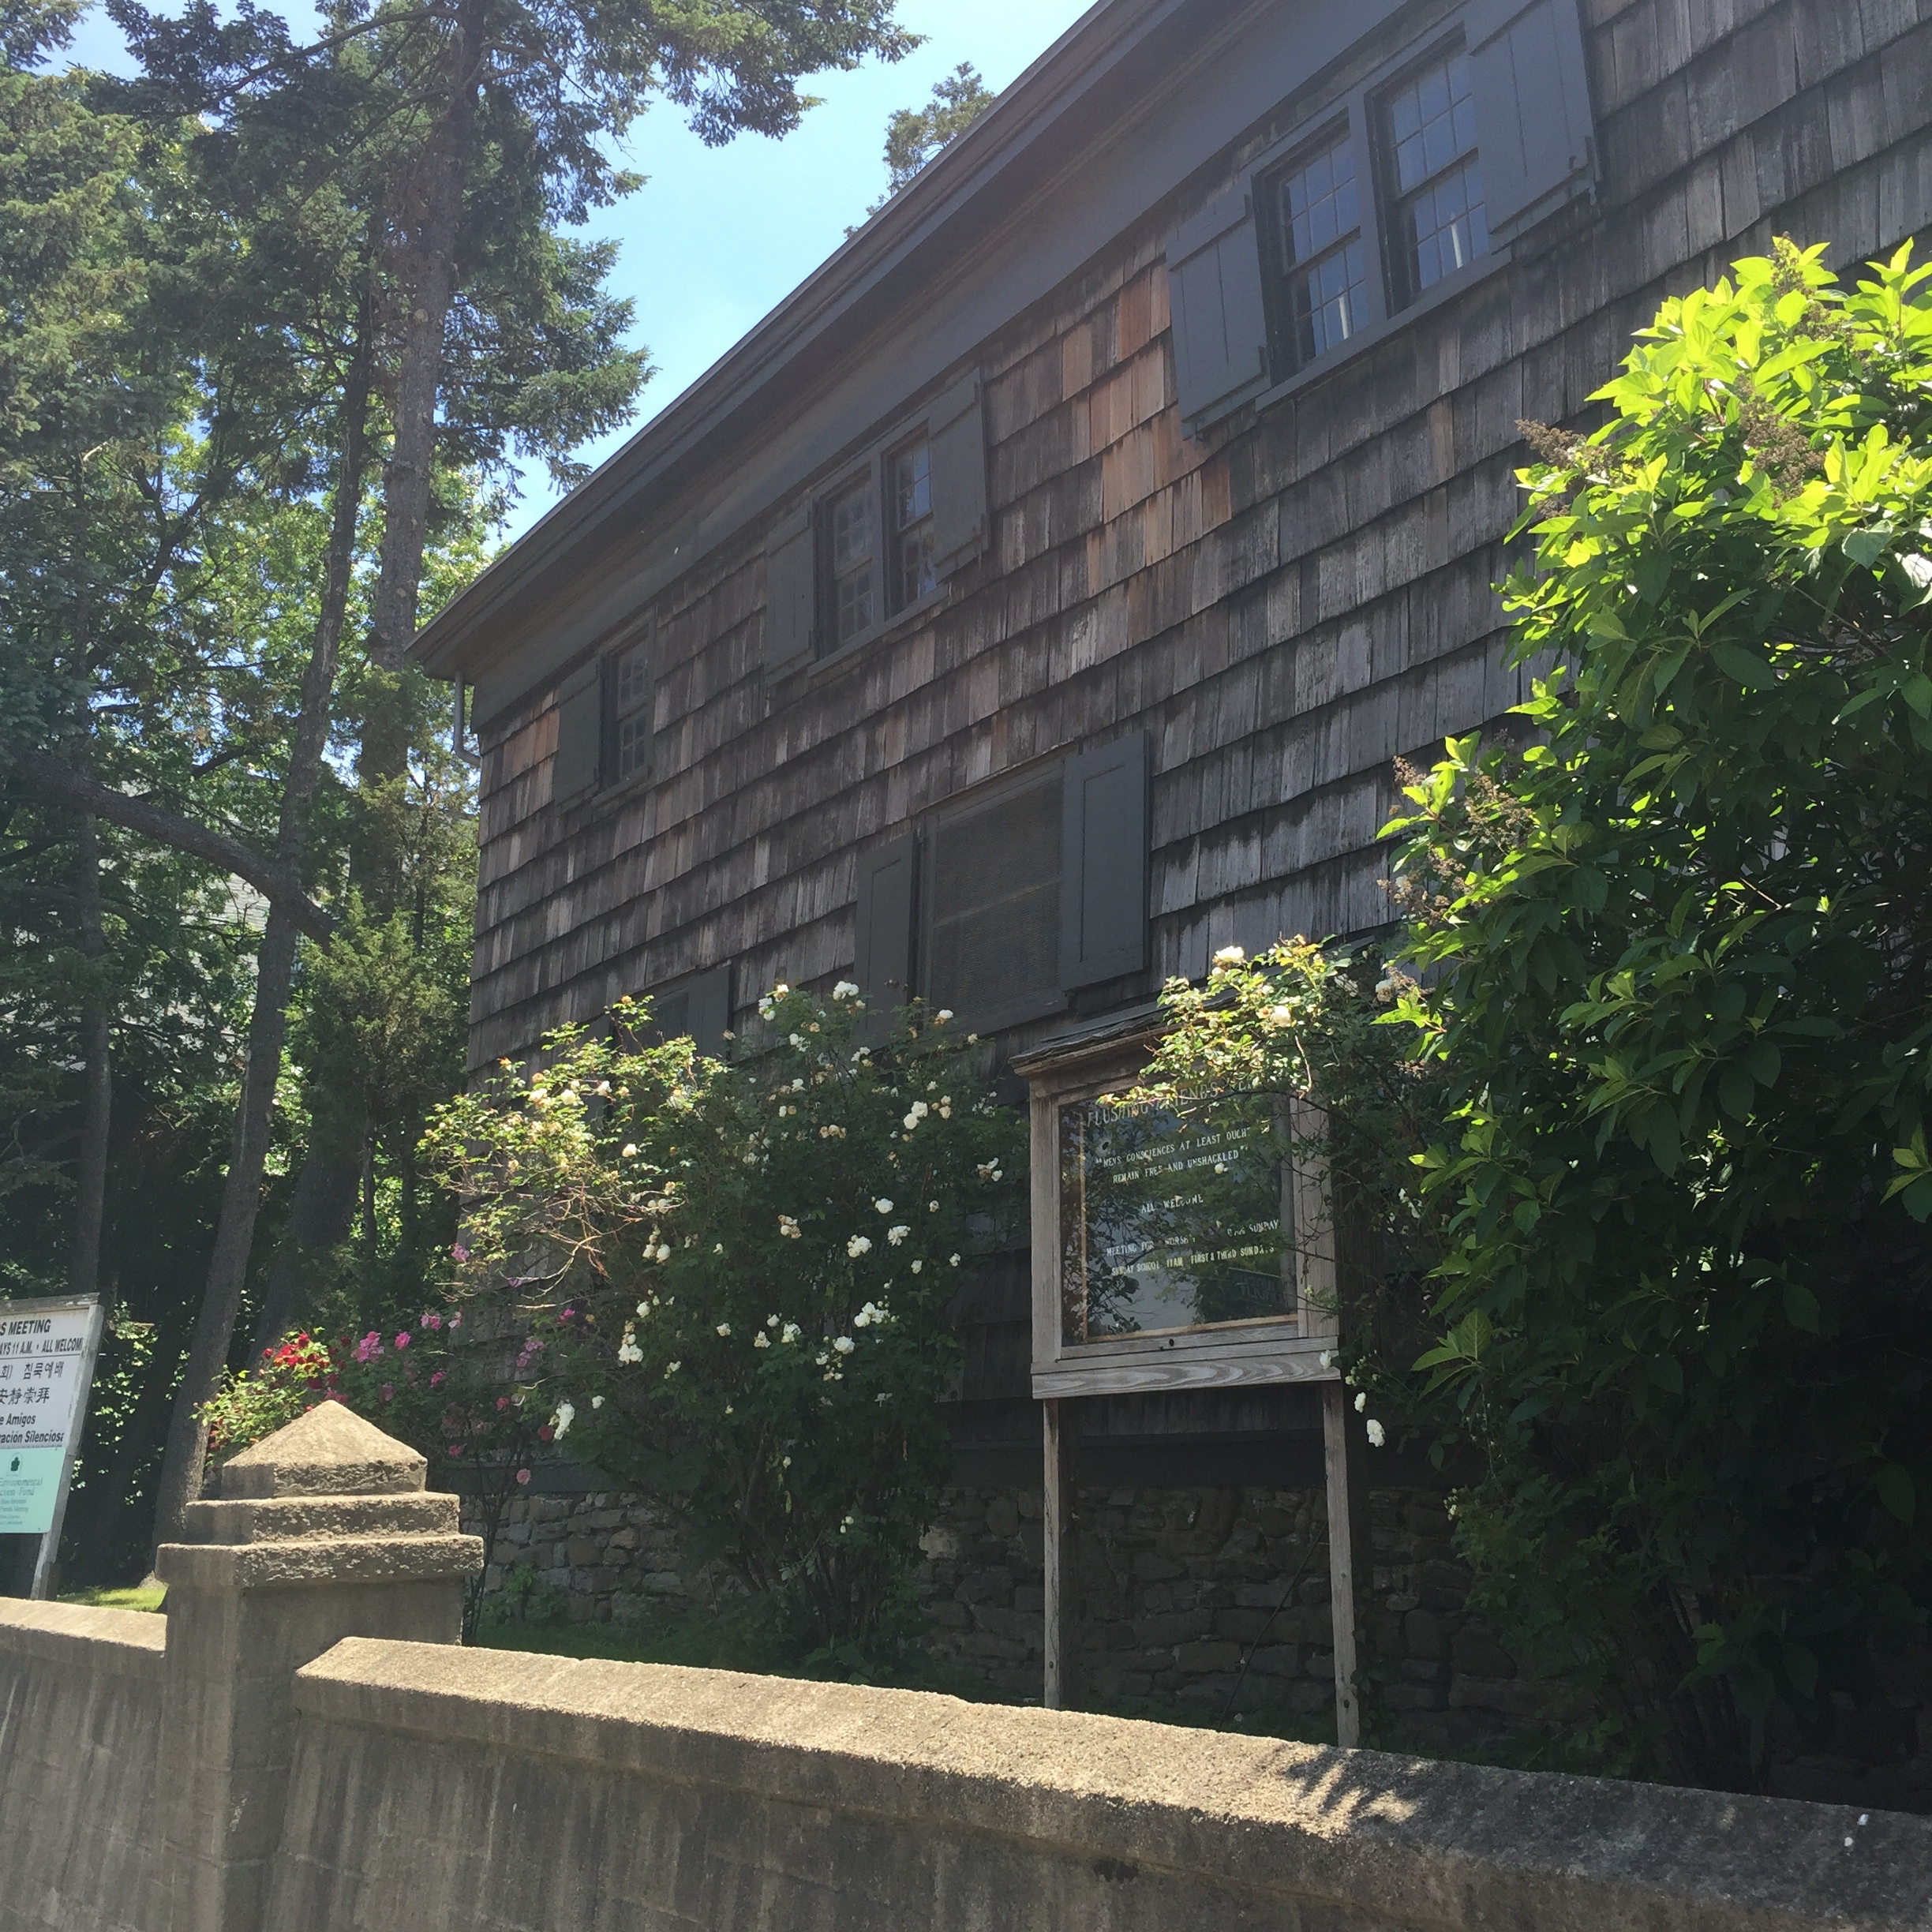 Finding Inspiration: Visiting My Quaker Roots